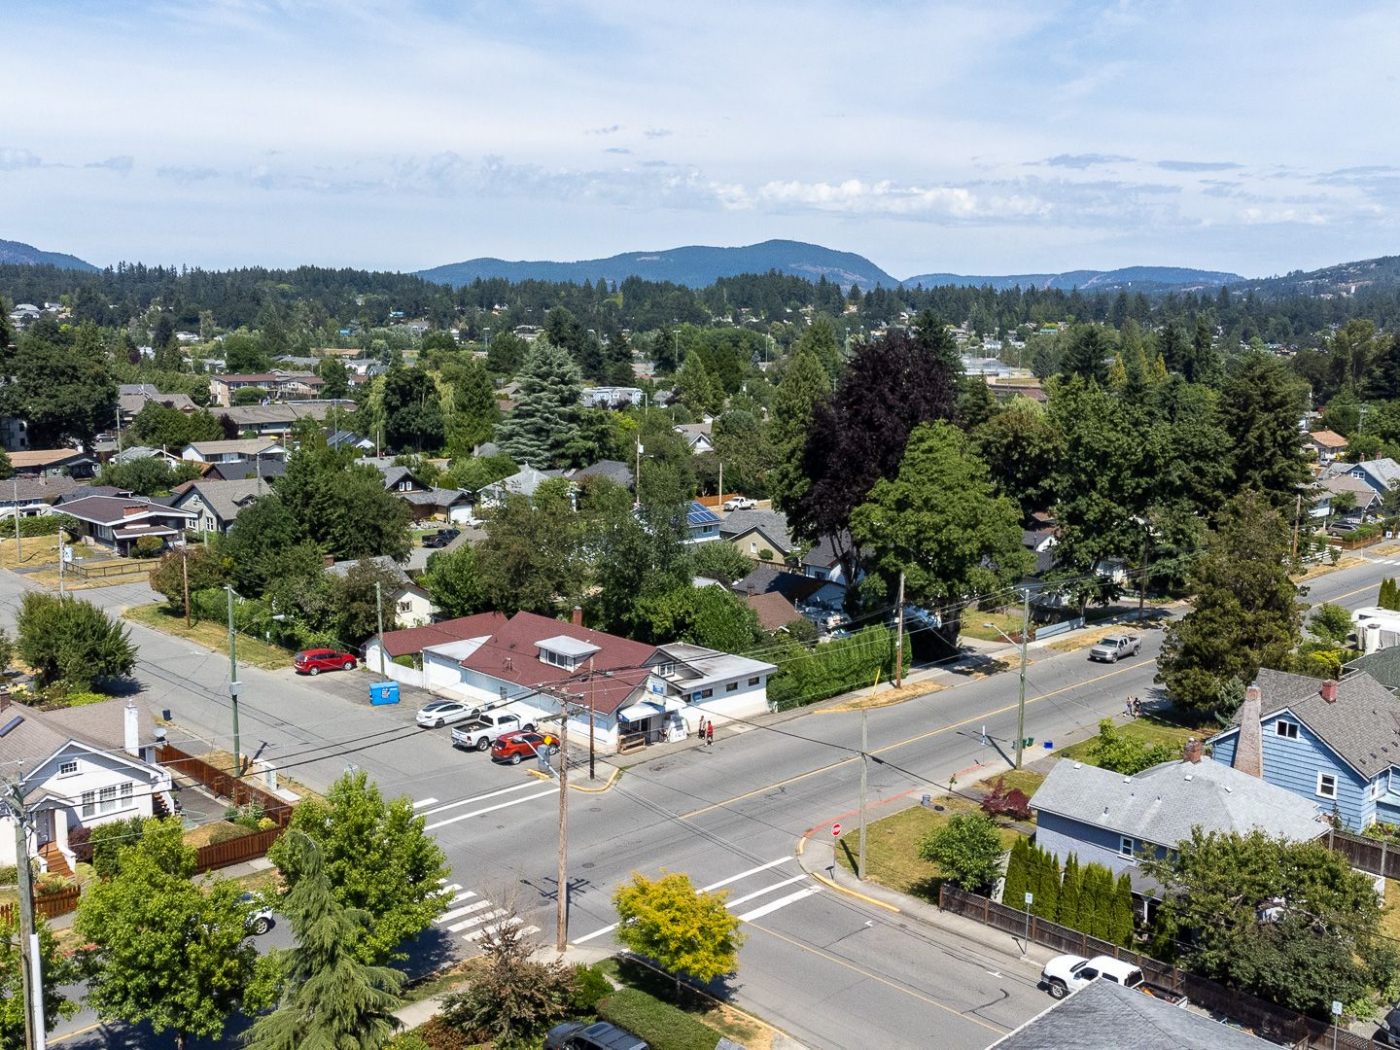 CONVENIENCE STORE with 3 BR HOME is a business for sale in BC.